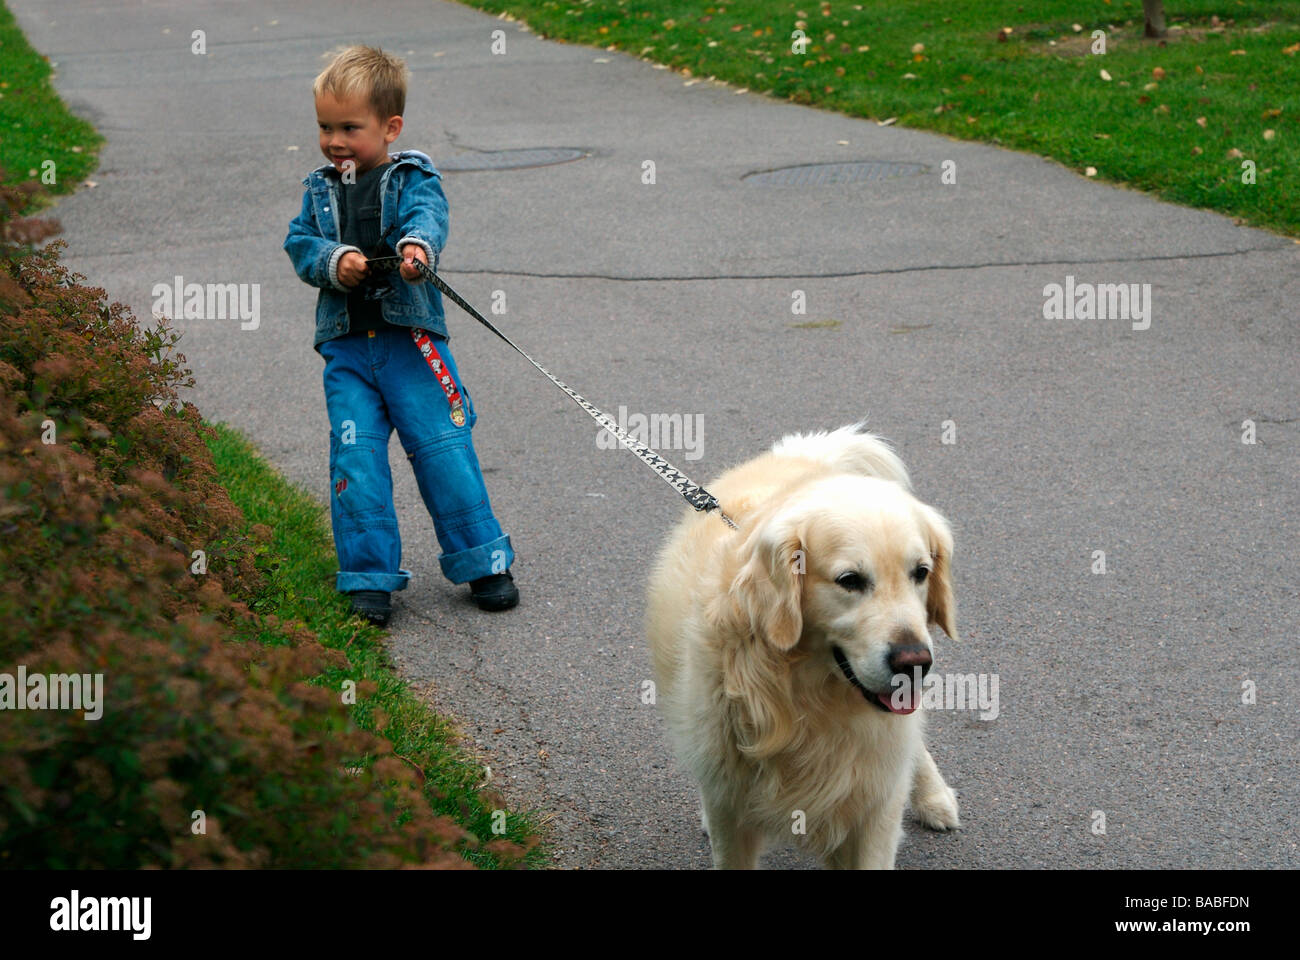 A boy walking a dog Linkoping Sweden - Stock Image